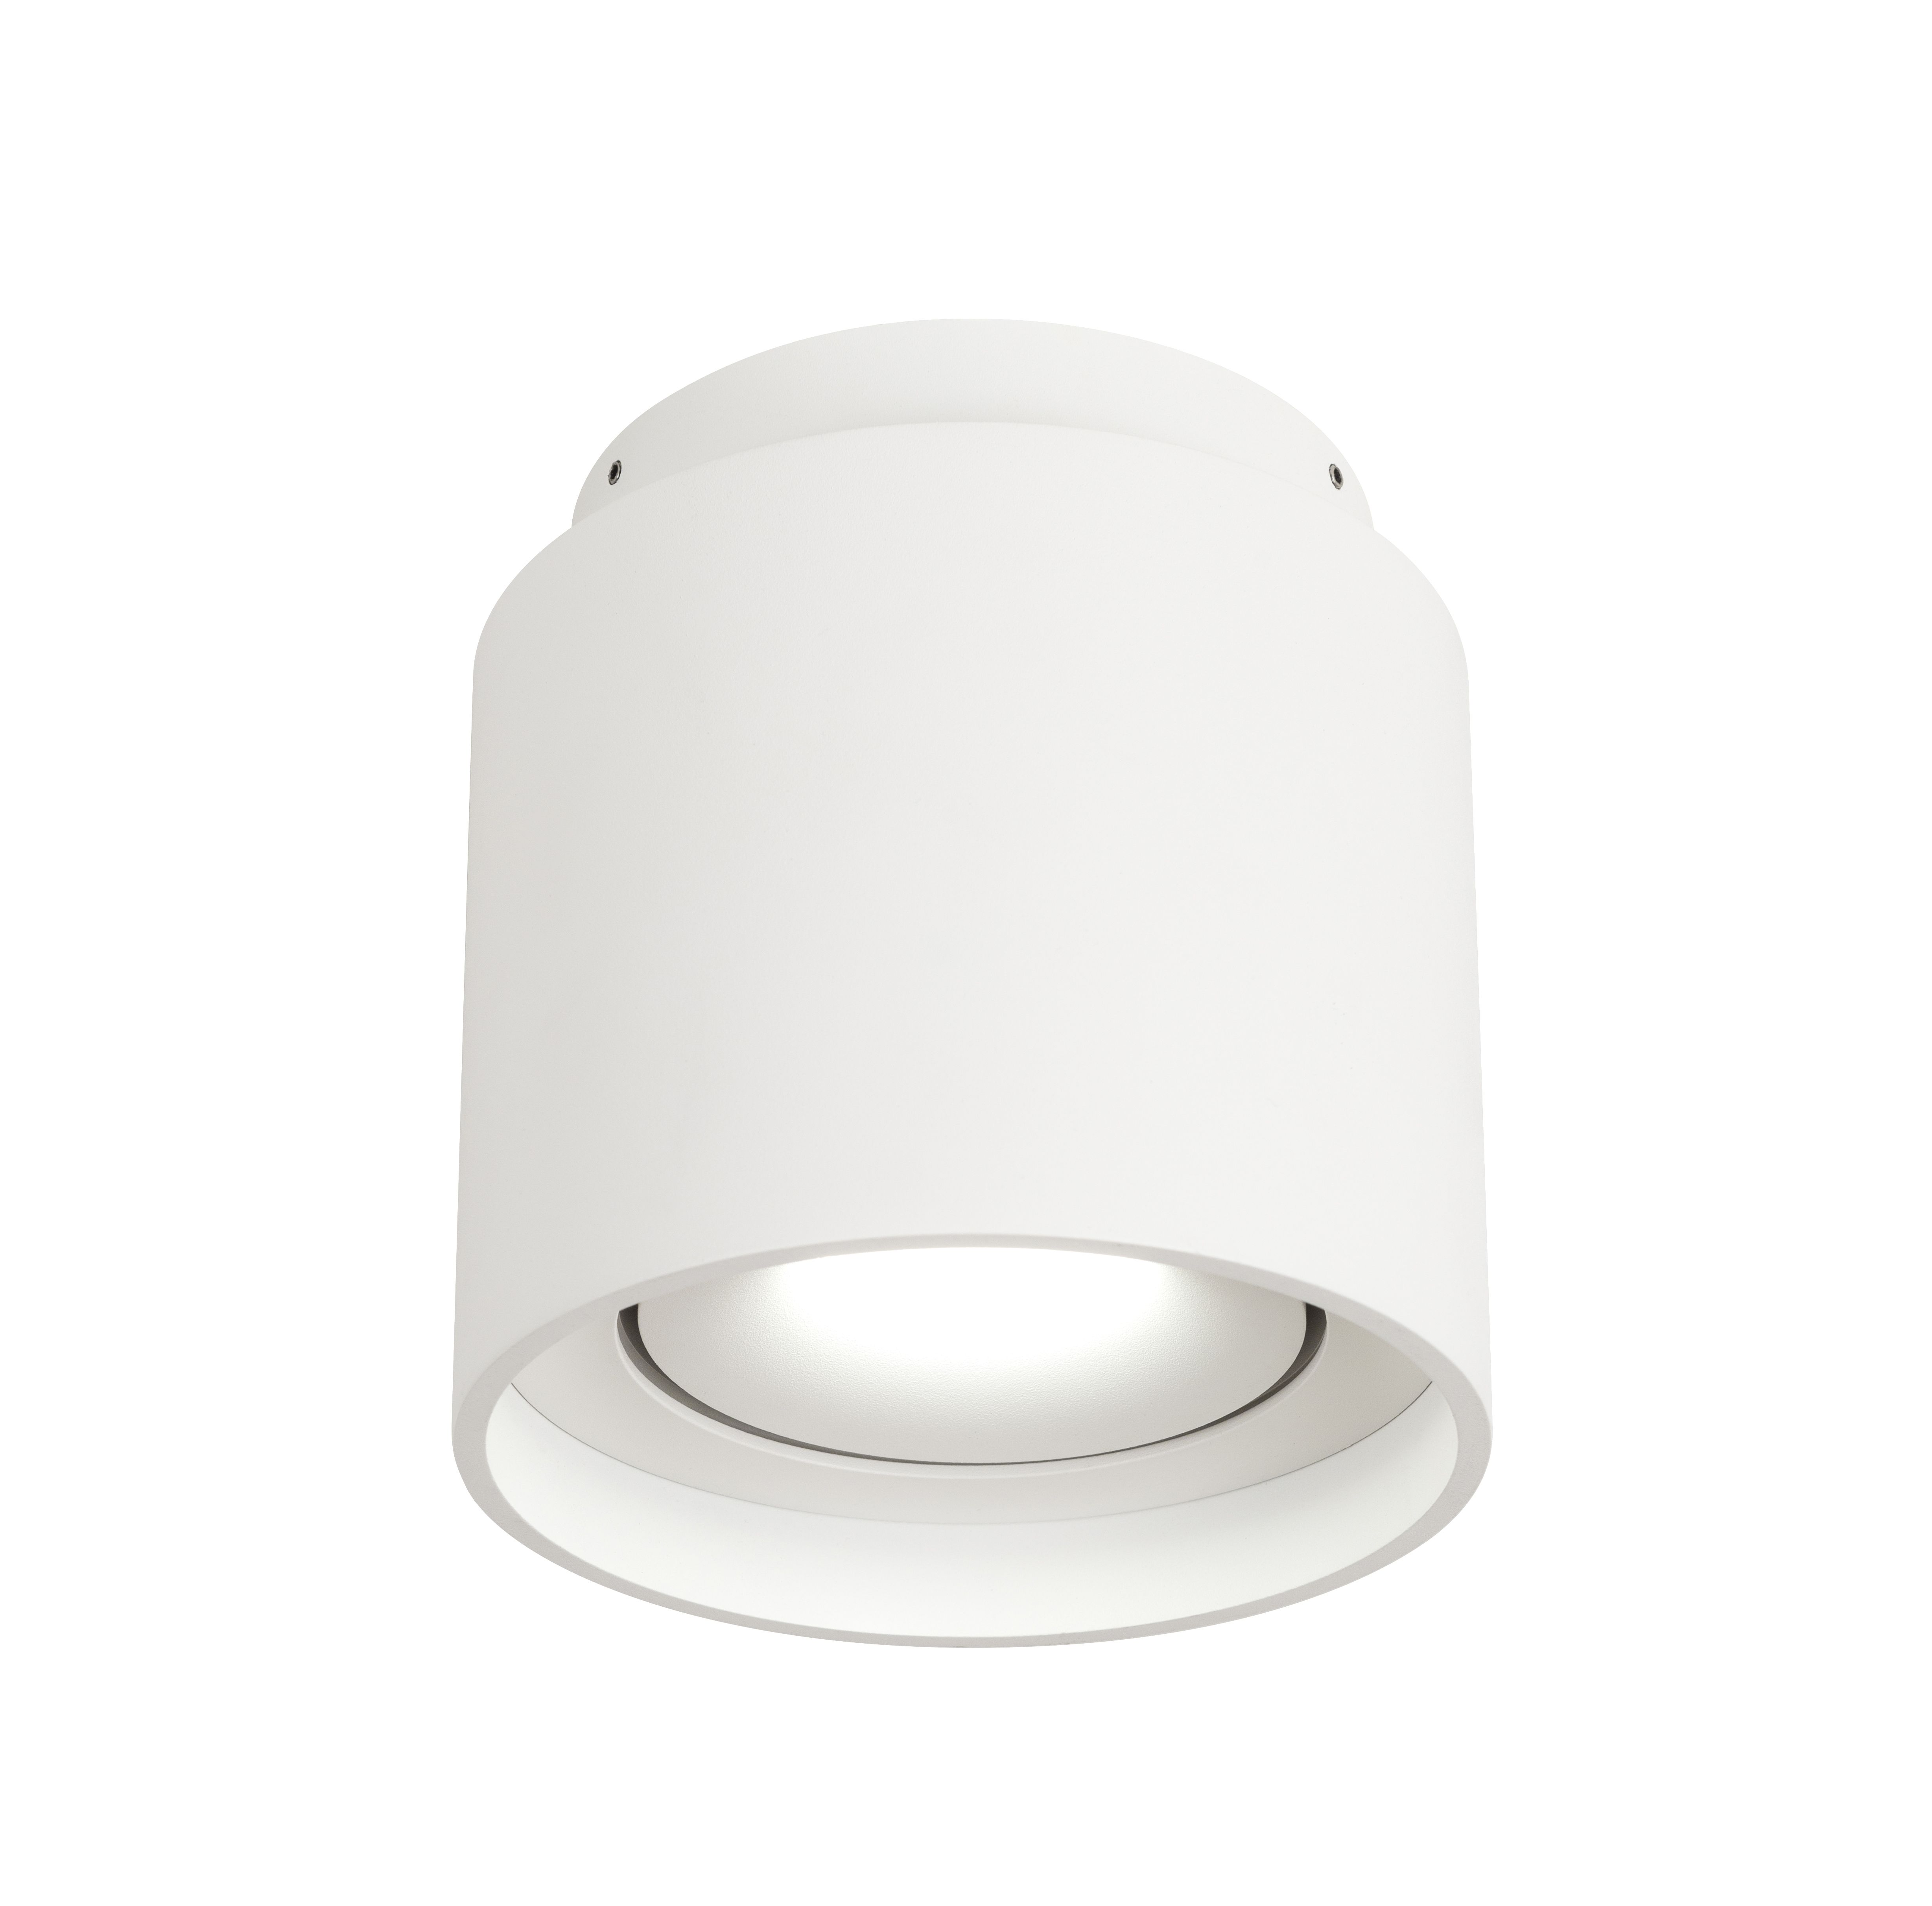 Integrated LED with 25 degree beam spread | Clean and Contemporary Ceiling Mounts | Coupe -  sc 1 st  Pinterest & Integrated LED with 25 degree beam spread | Clean and Contemporary ... azcodes.com